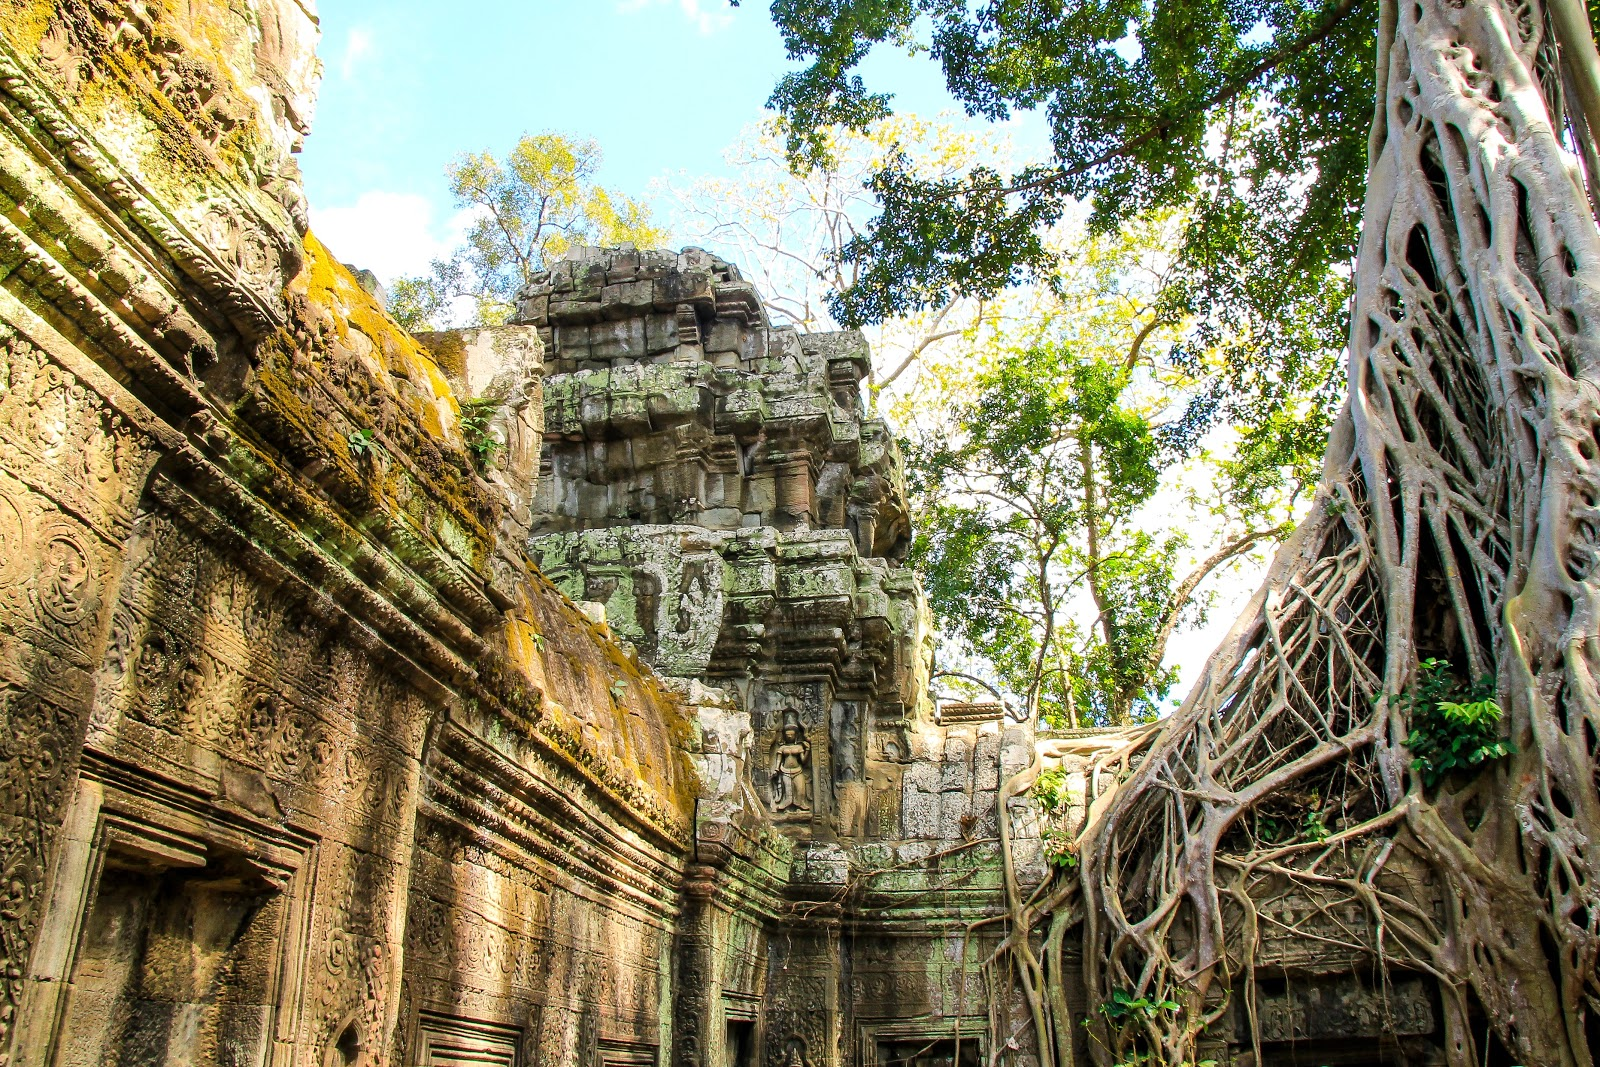 old ruins and temples of the Angkor Archaeological Park